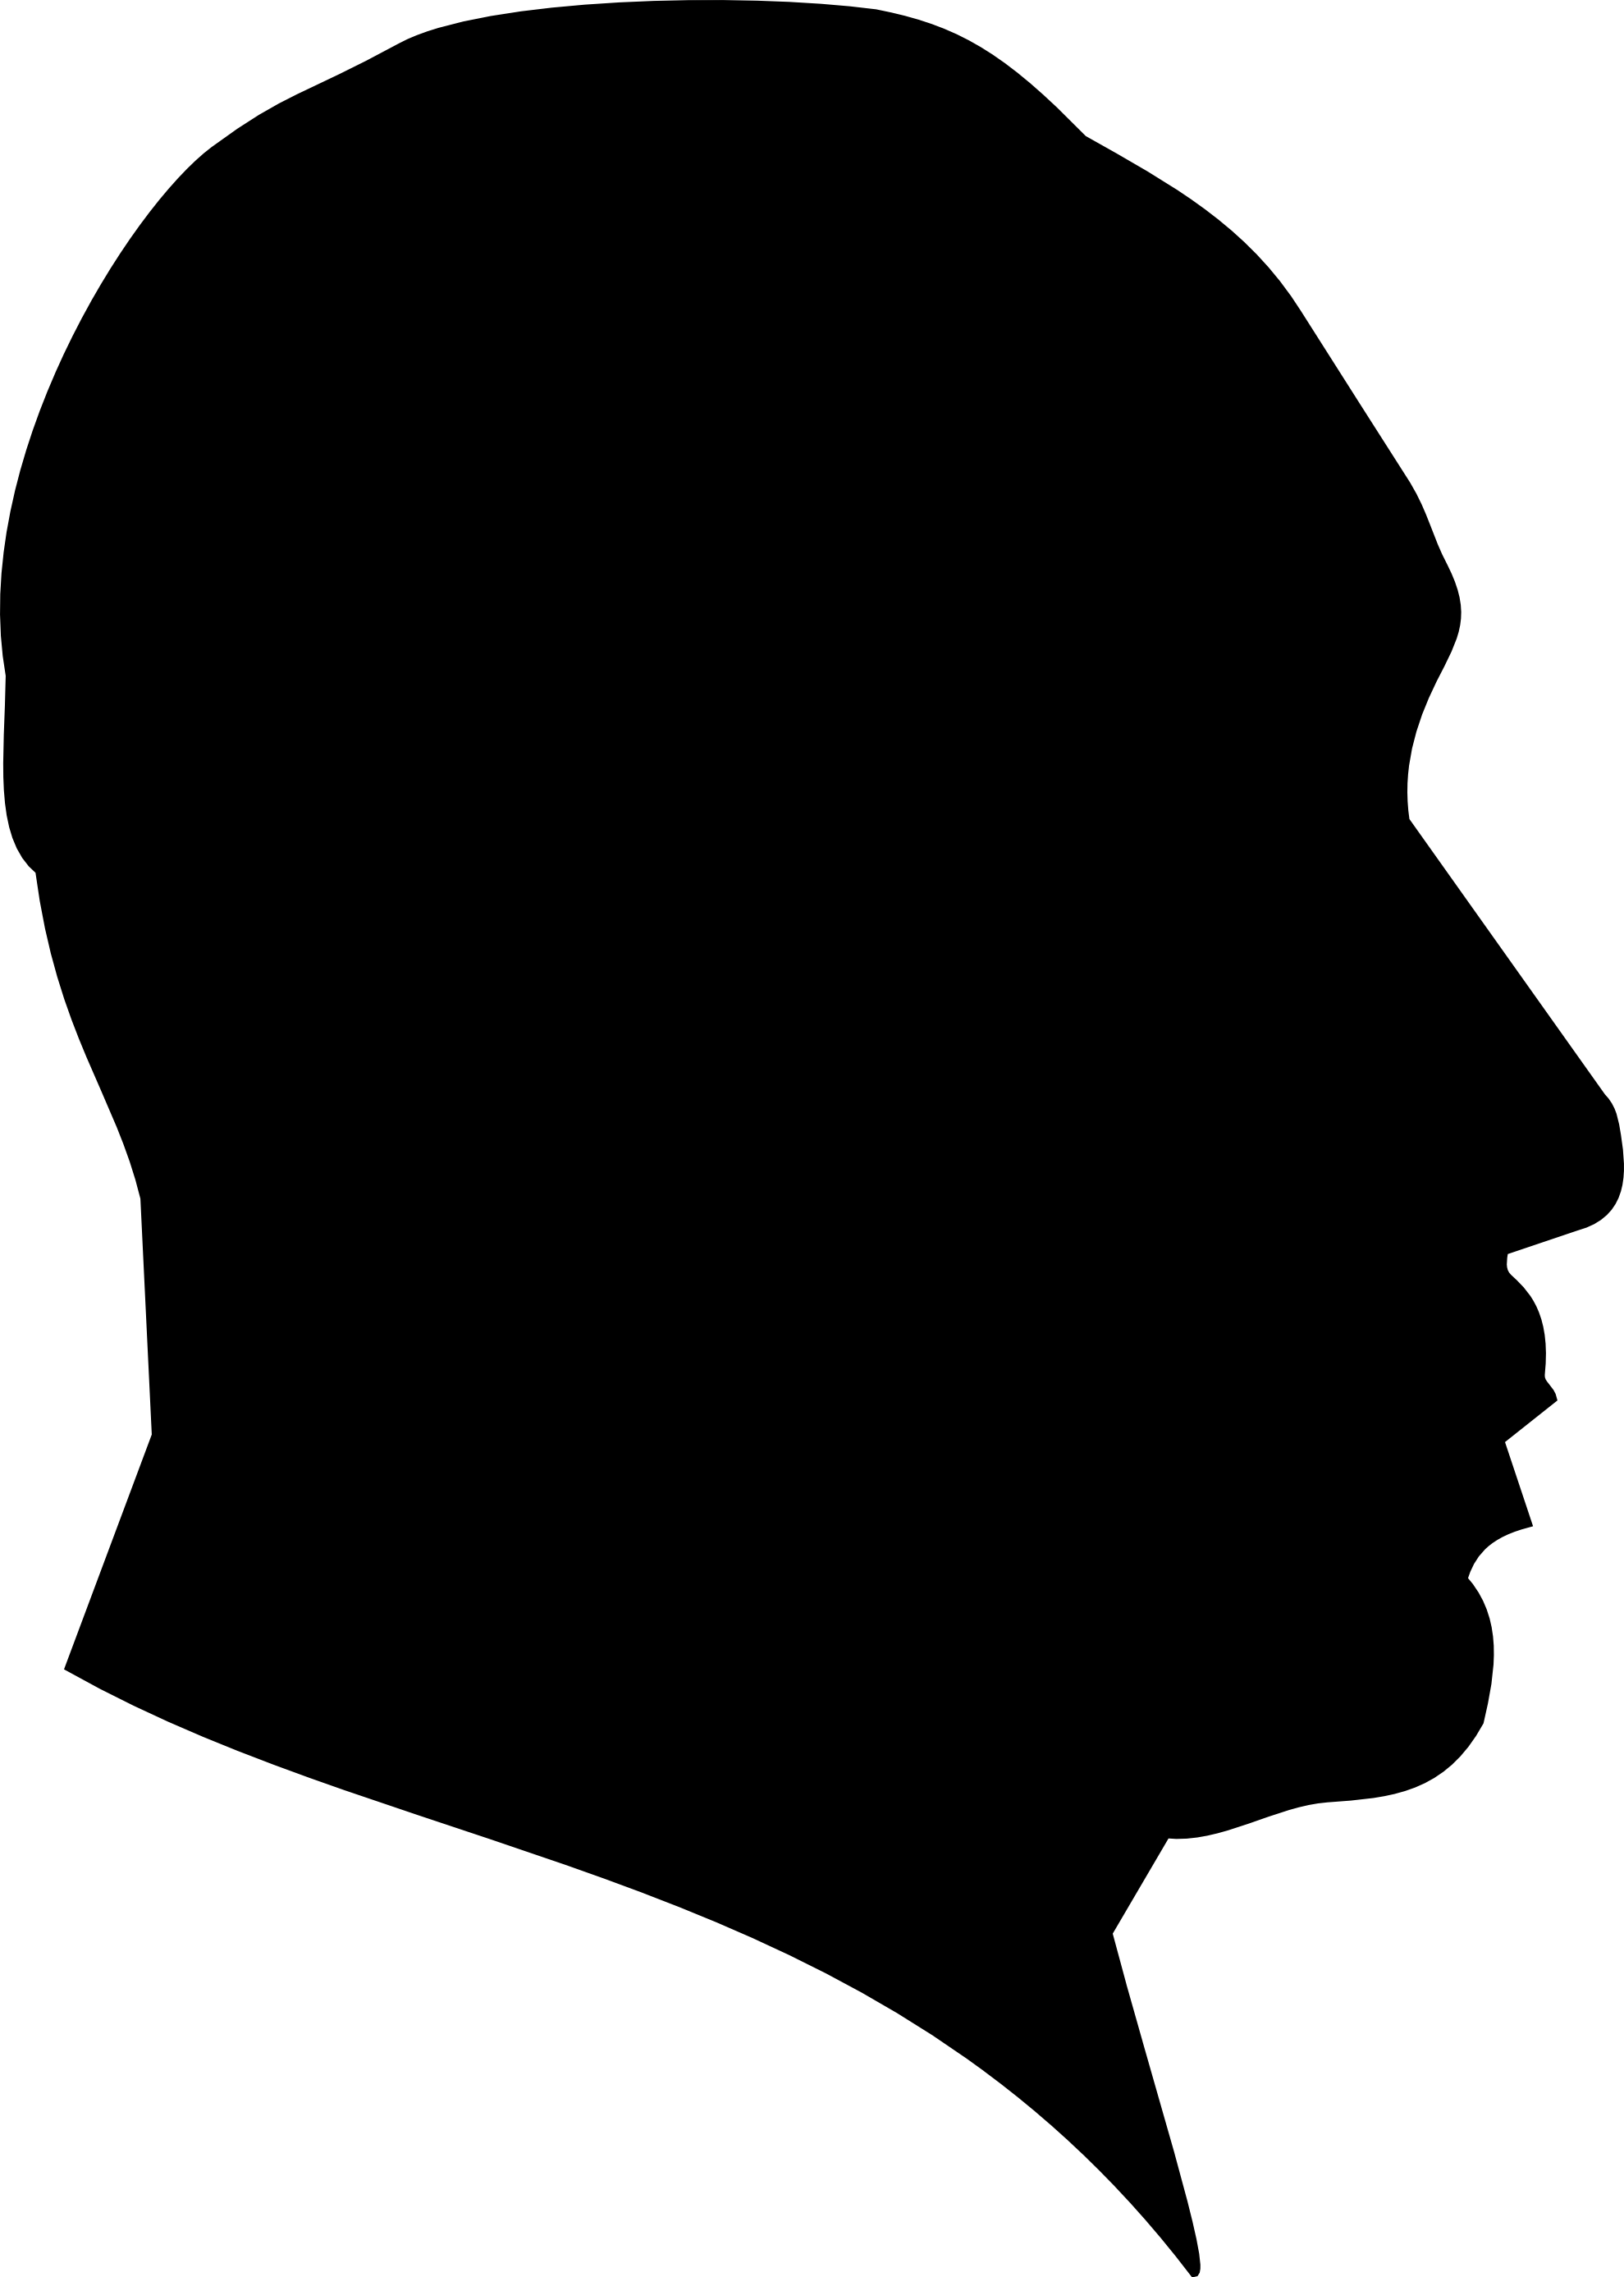 Dr Martin Luther King Profile Silhouette SVG - ClipArt Best - ClipArt ...